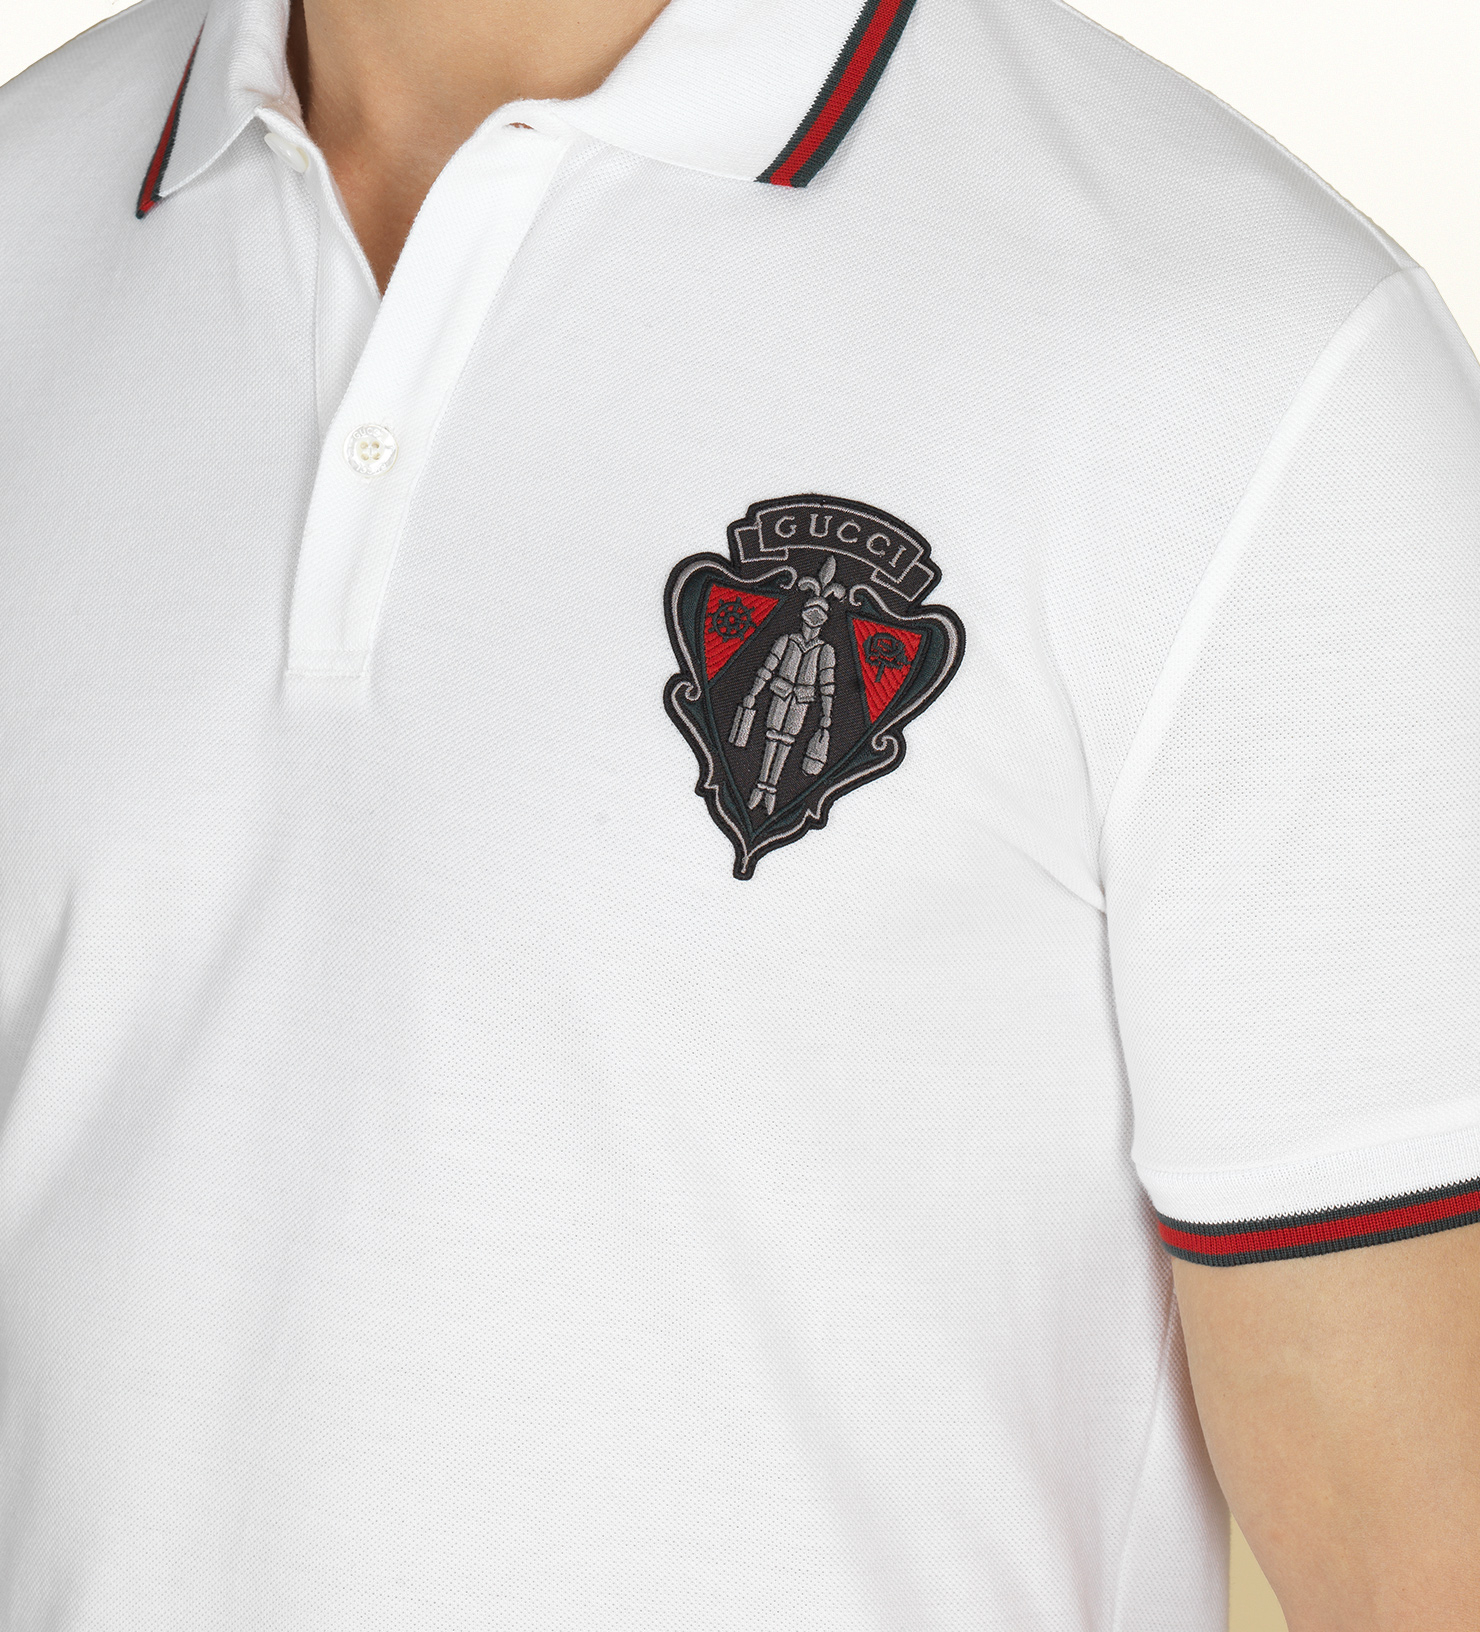 Gucci White Polo Shirt In White For Men Lyst